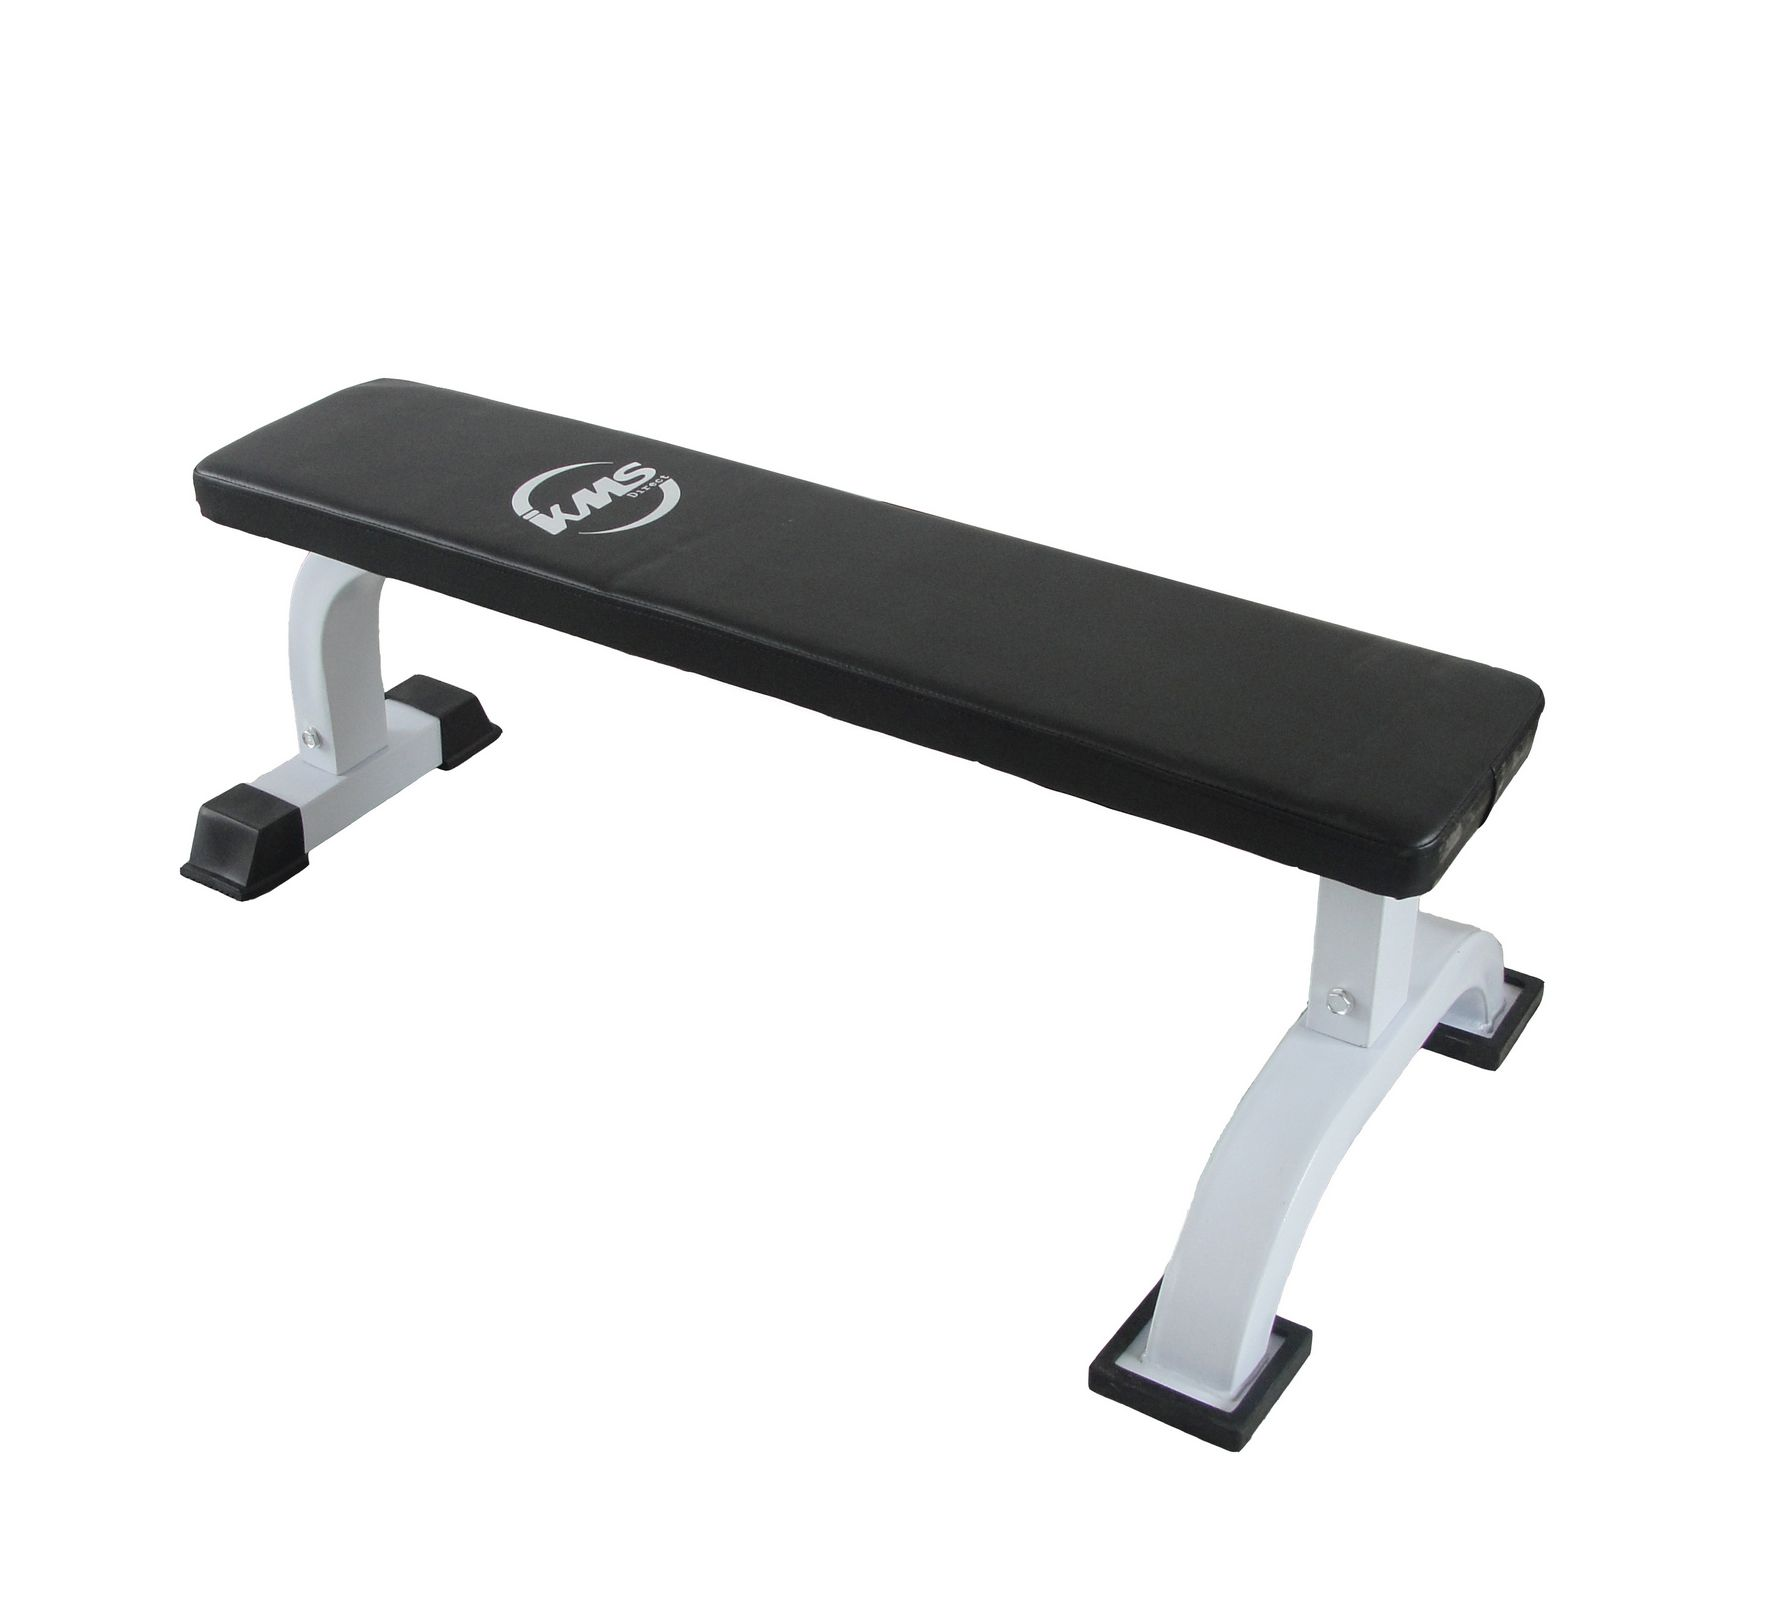 Fitness Flat Bench Weight Lifting Utility Dumbbell Press